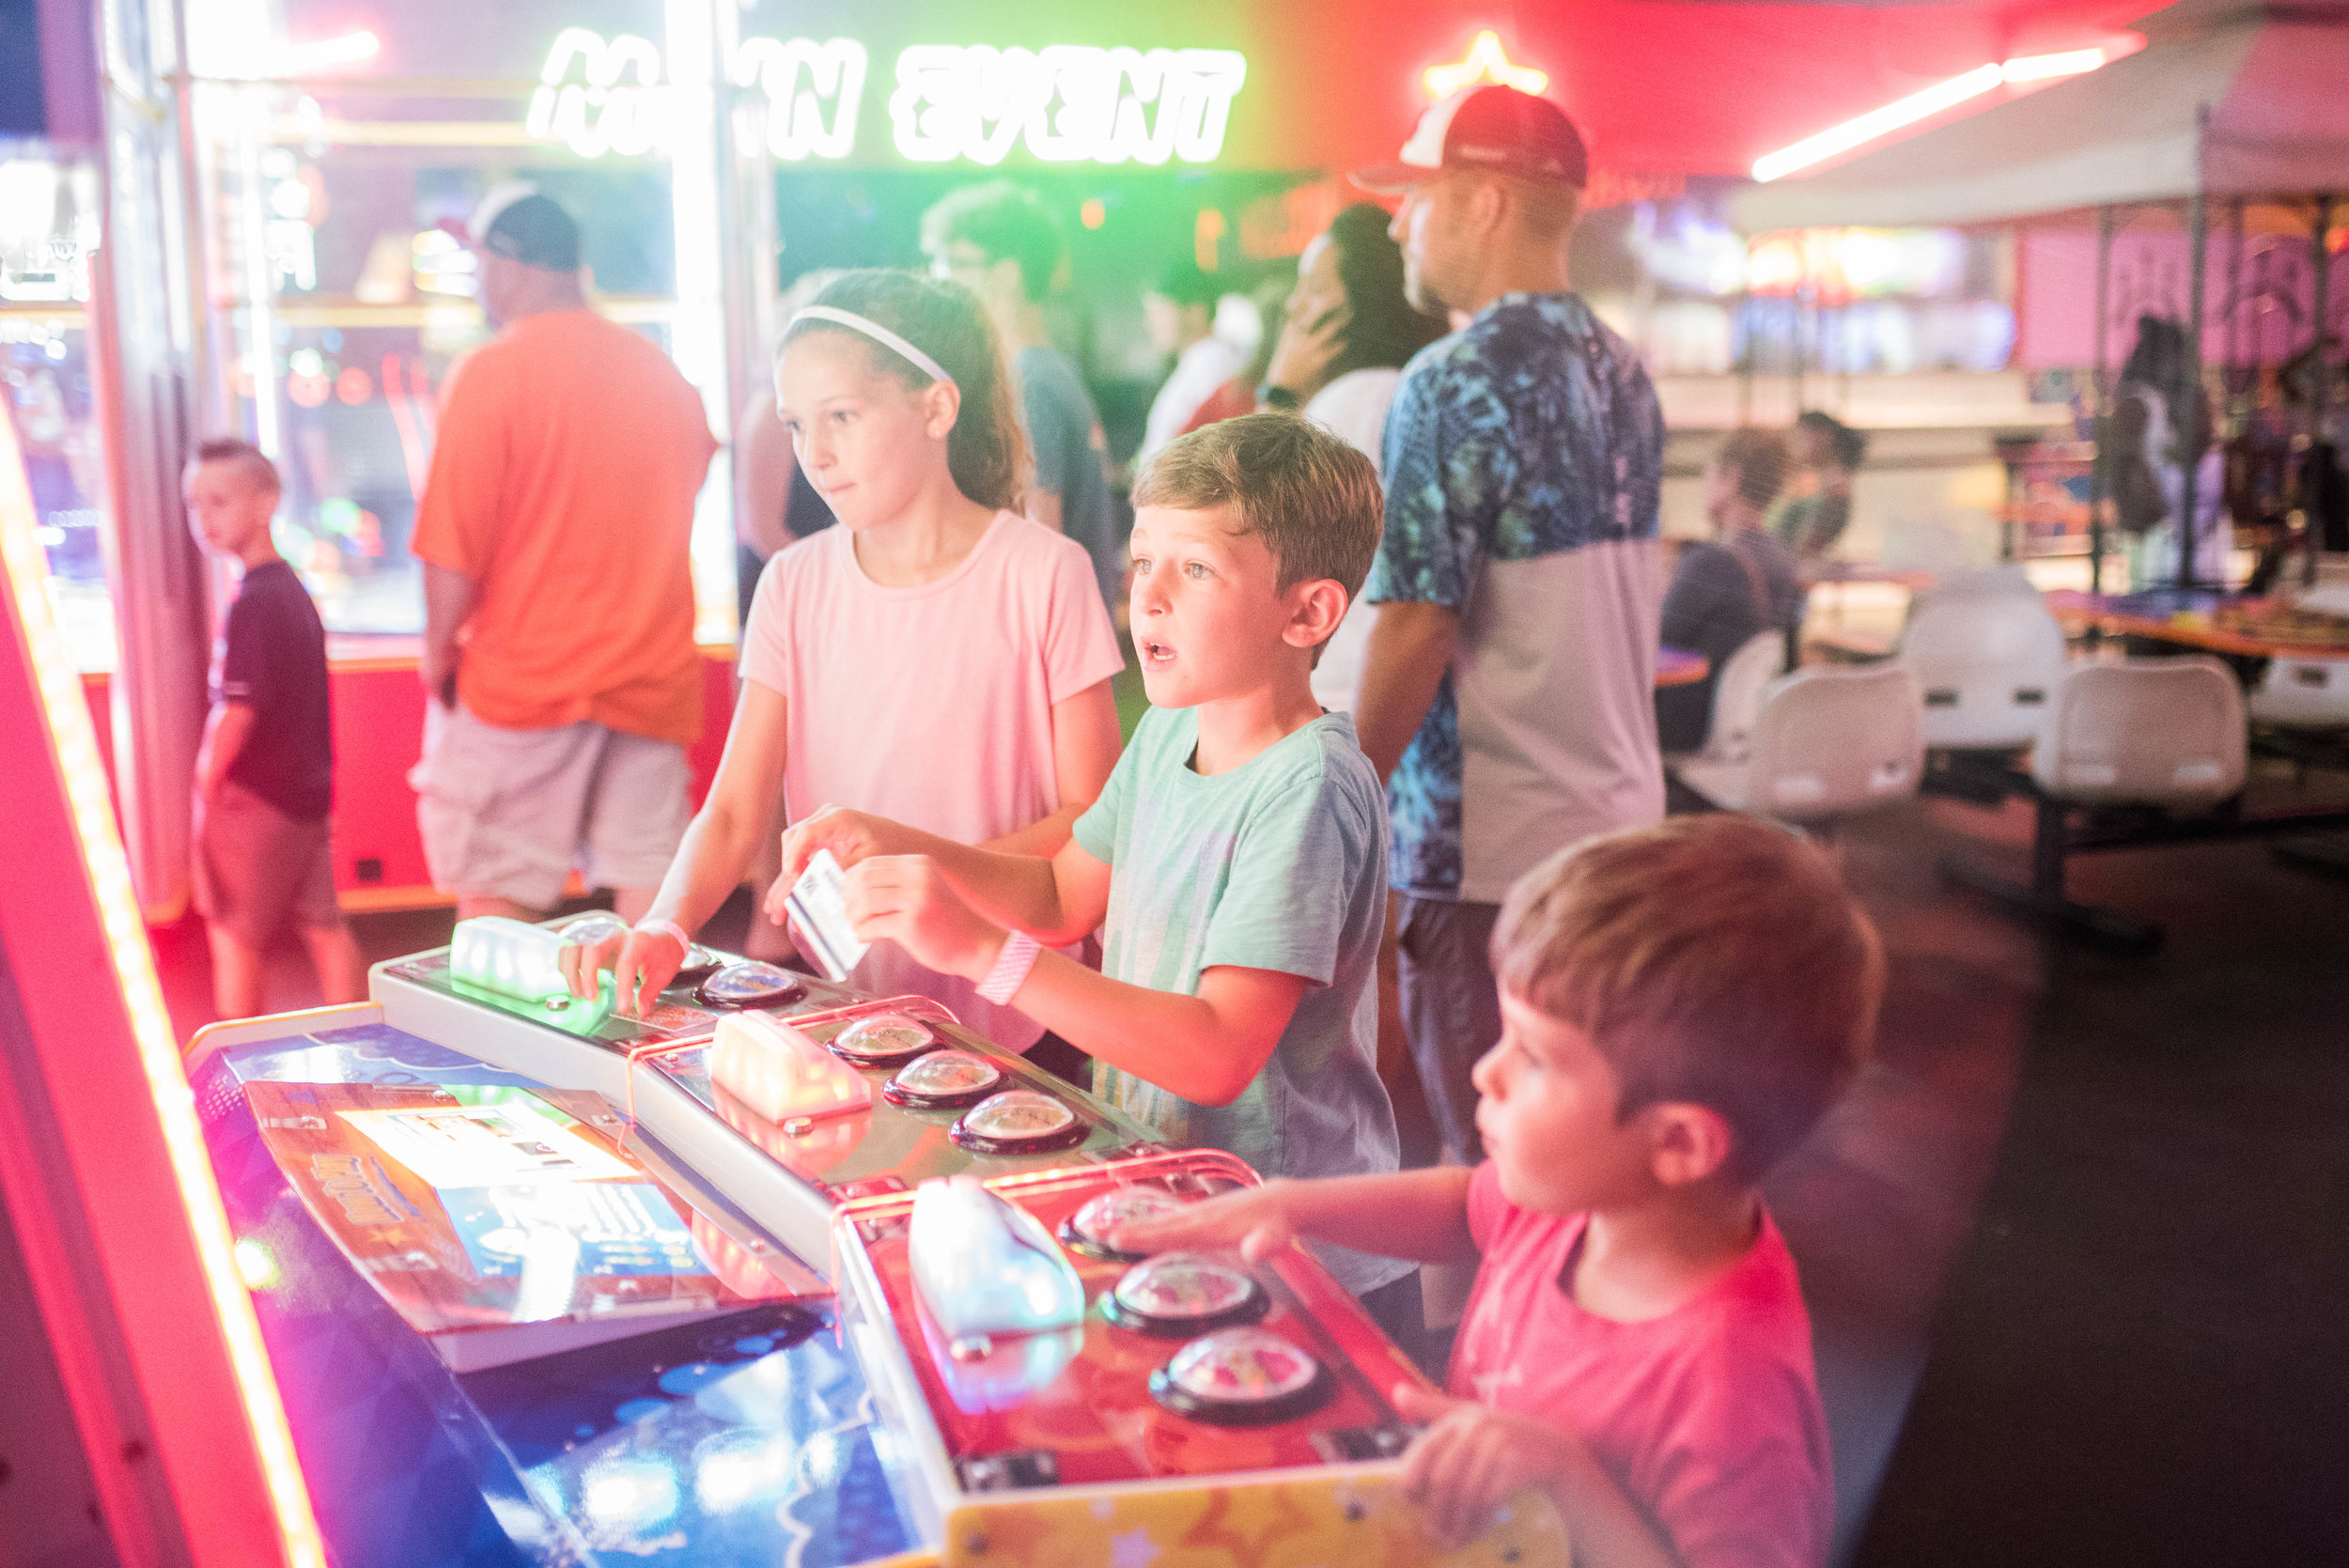 When the beach day was a complete wash-out...we headed to the (super-overcrowded) skating rink and arcade.